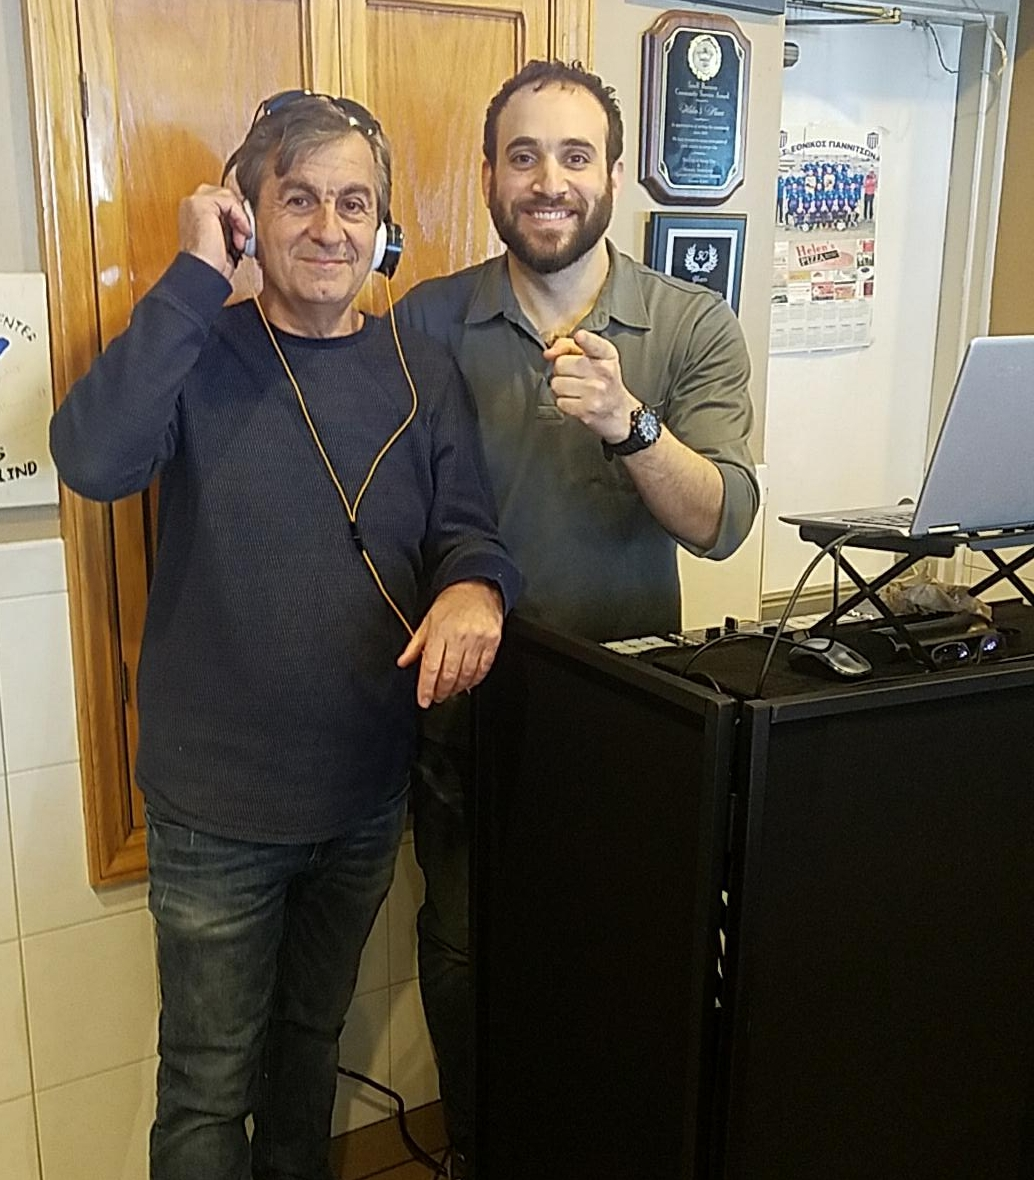 Steven Kalcanides of Helen's Pizza in Jersey City - Steven, the owner of Helen's Pizza, making sure I have the correct version of Zorba the Greek.